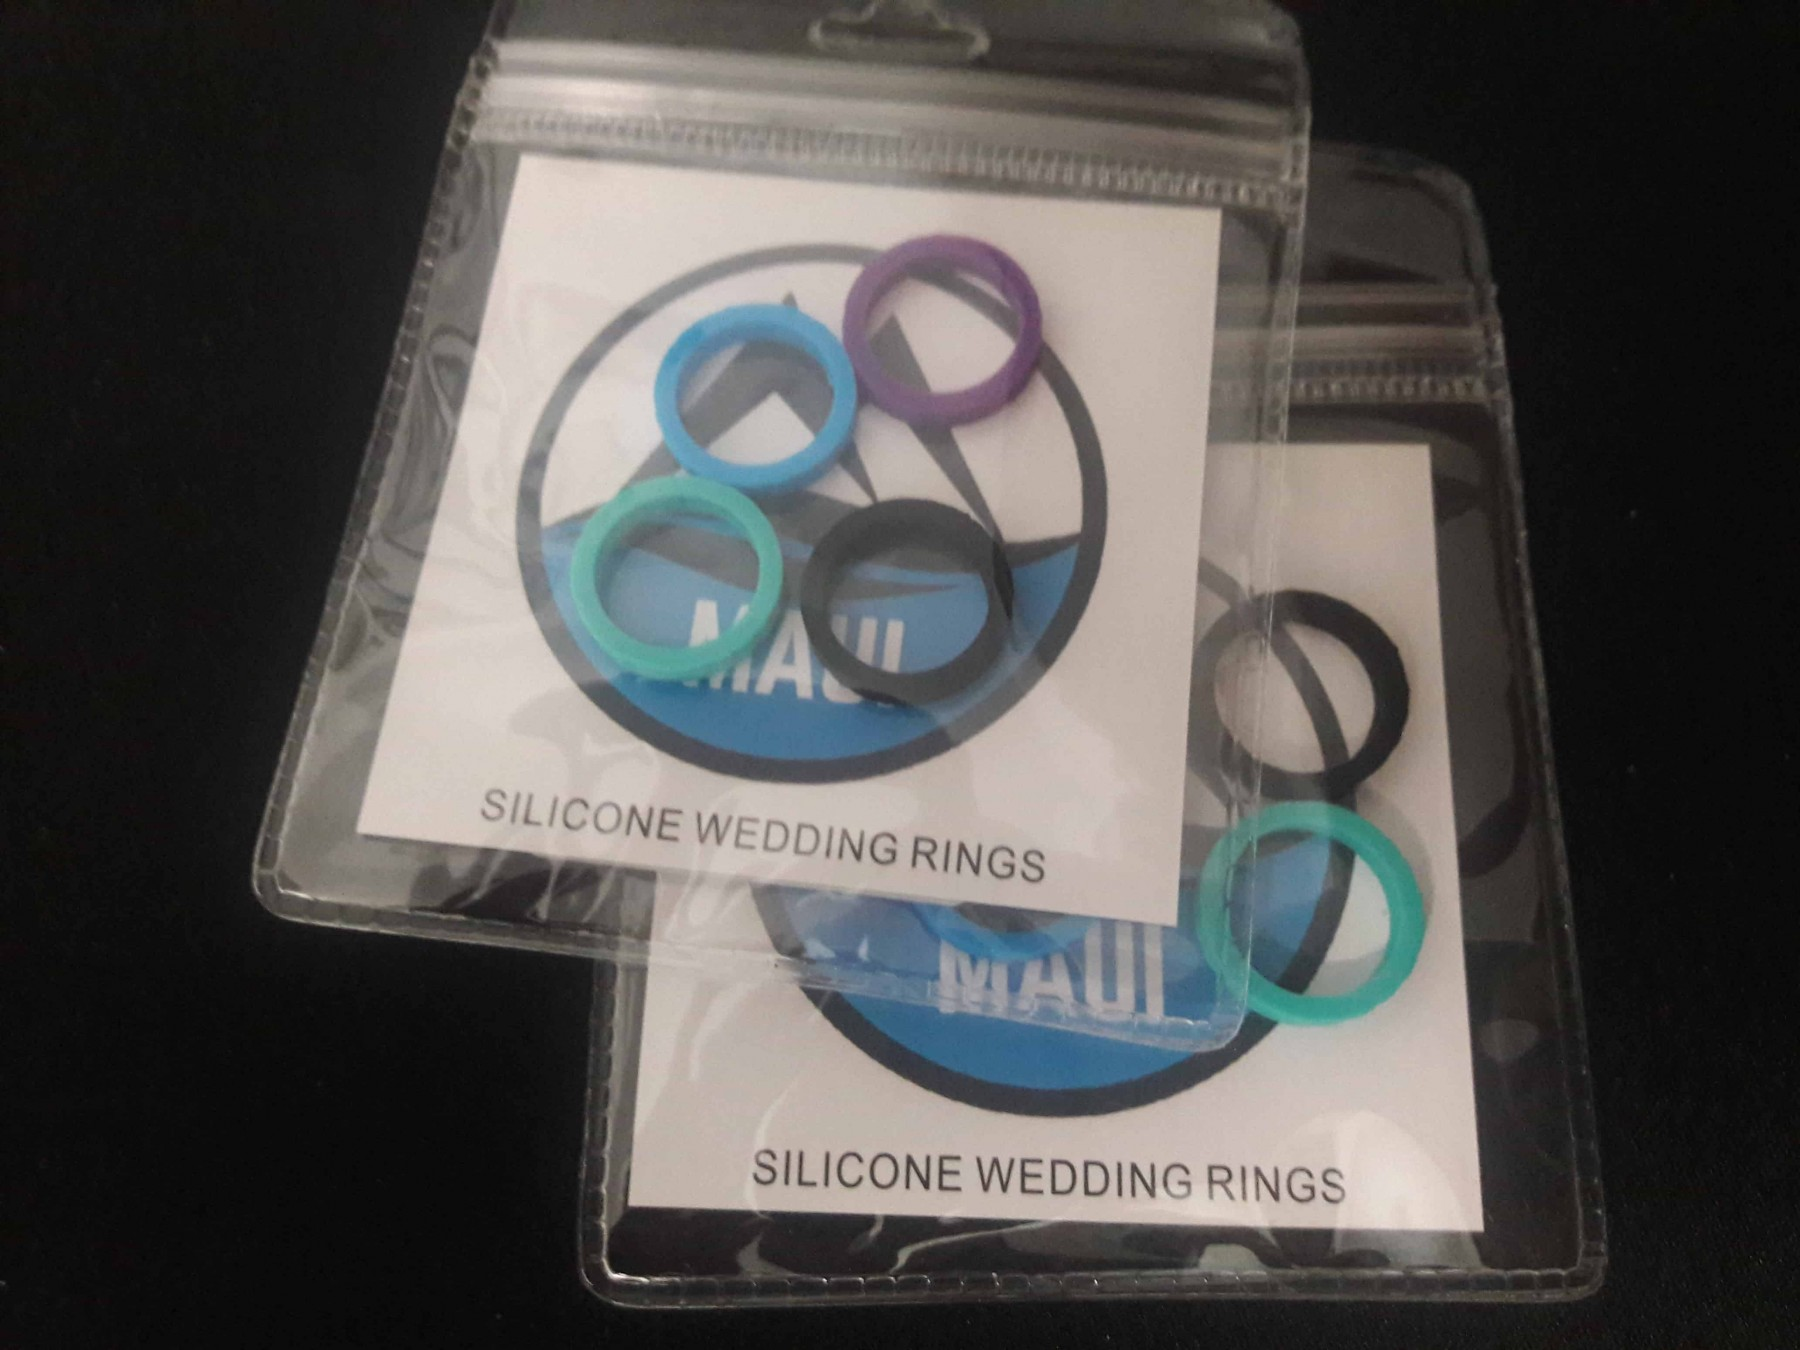 Maui Silicone rings are perfect for the gym.